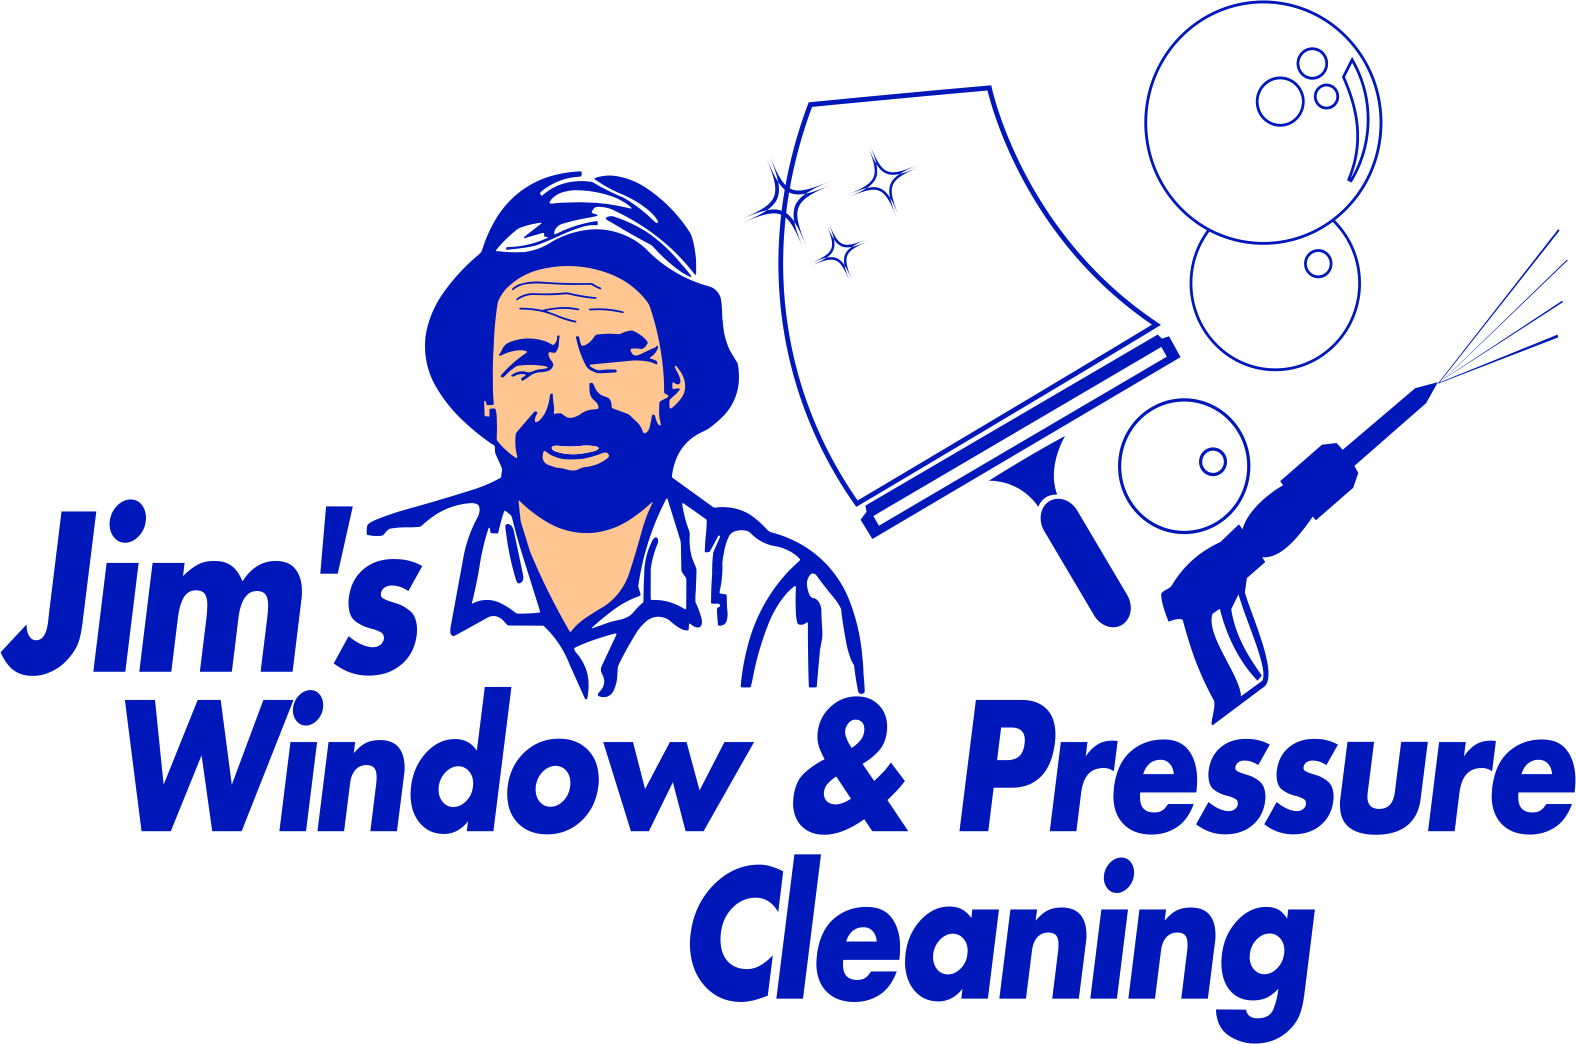 Jim's Window & Pressure Cleaning Adelaide Pasadena SPECIAL 2 for 1!!!